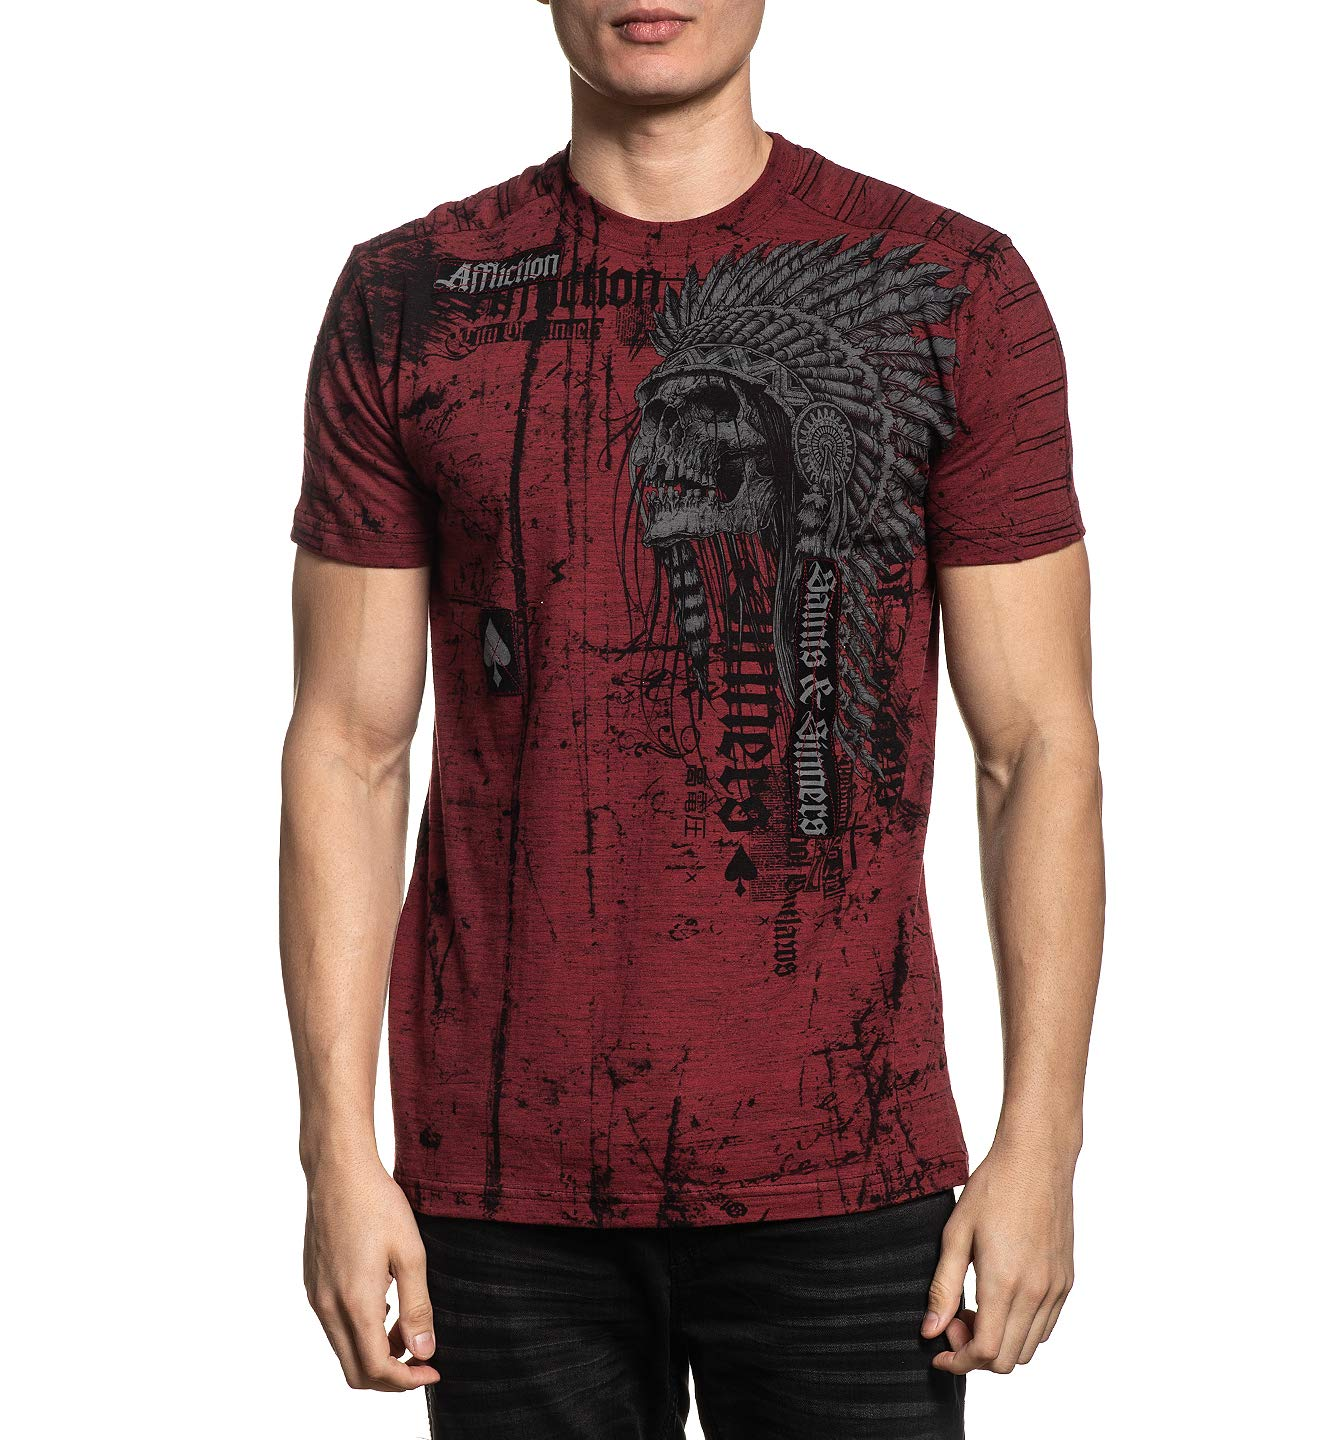 Affliction Men's Graphic T-Shirt, Renegade Variant, Short Sleeve Crew Neck Shirt